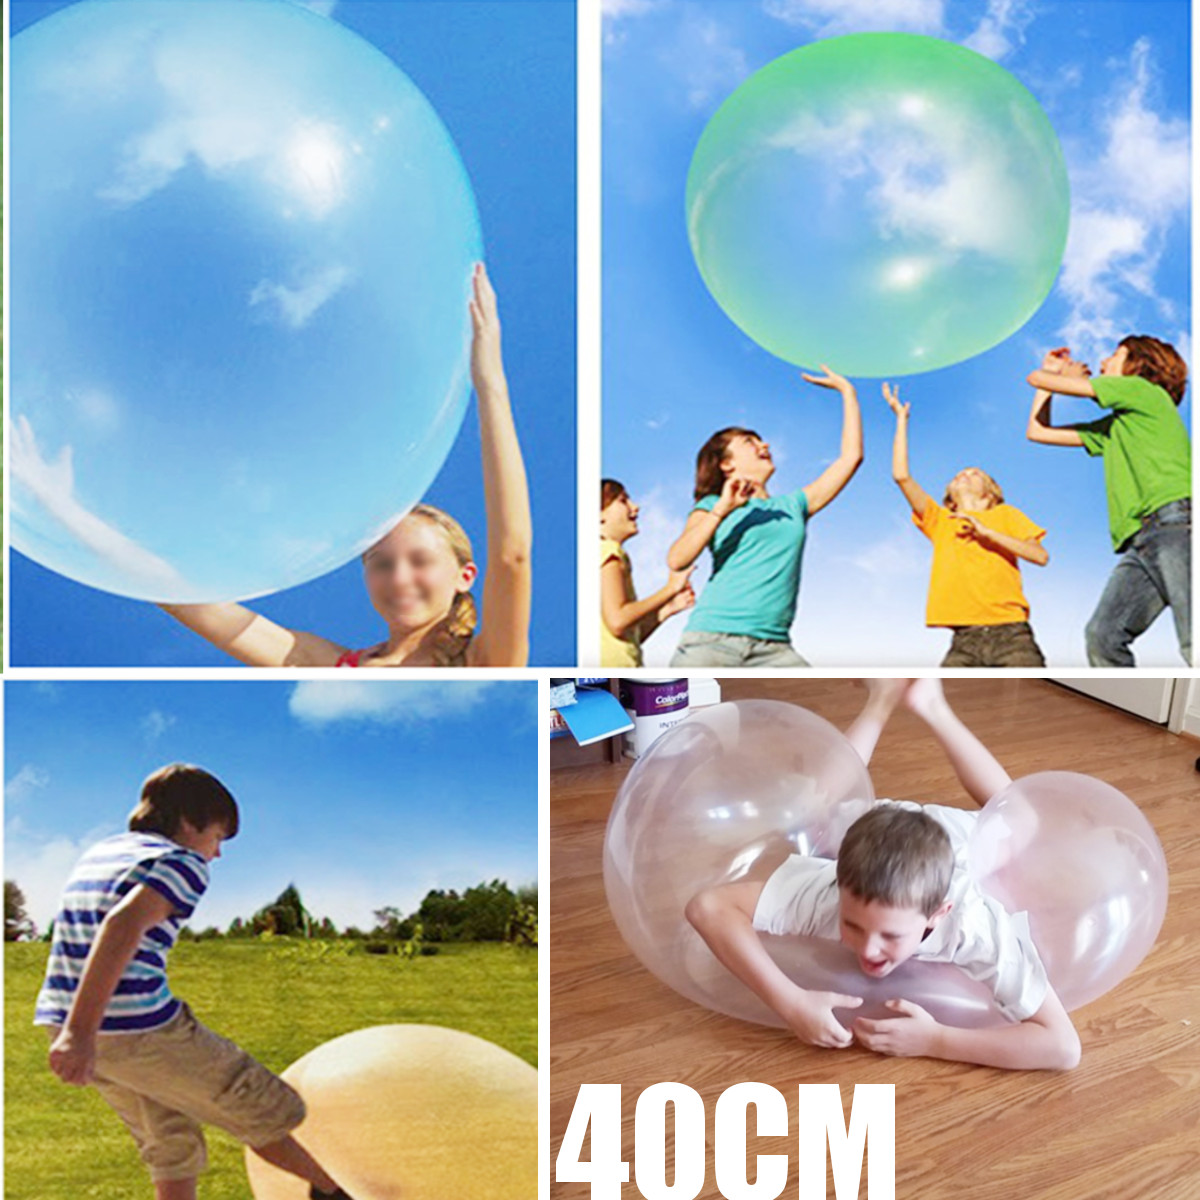 The Amazing Tear Resistant 25cm WUBBLE Bubble Ball Kids Toy Inflatable Toys Outdoor Beach Play Toy